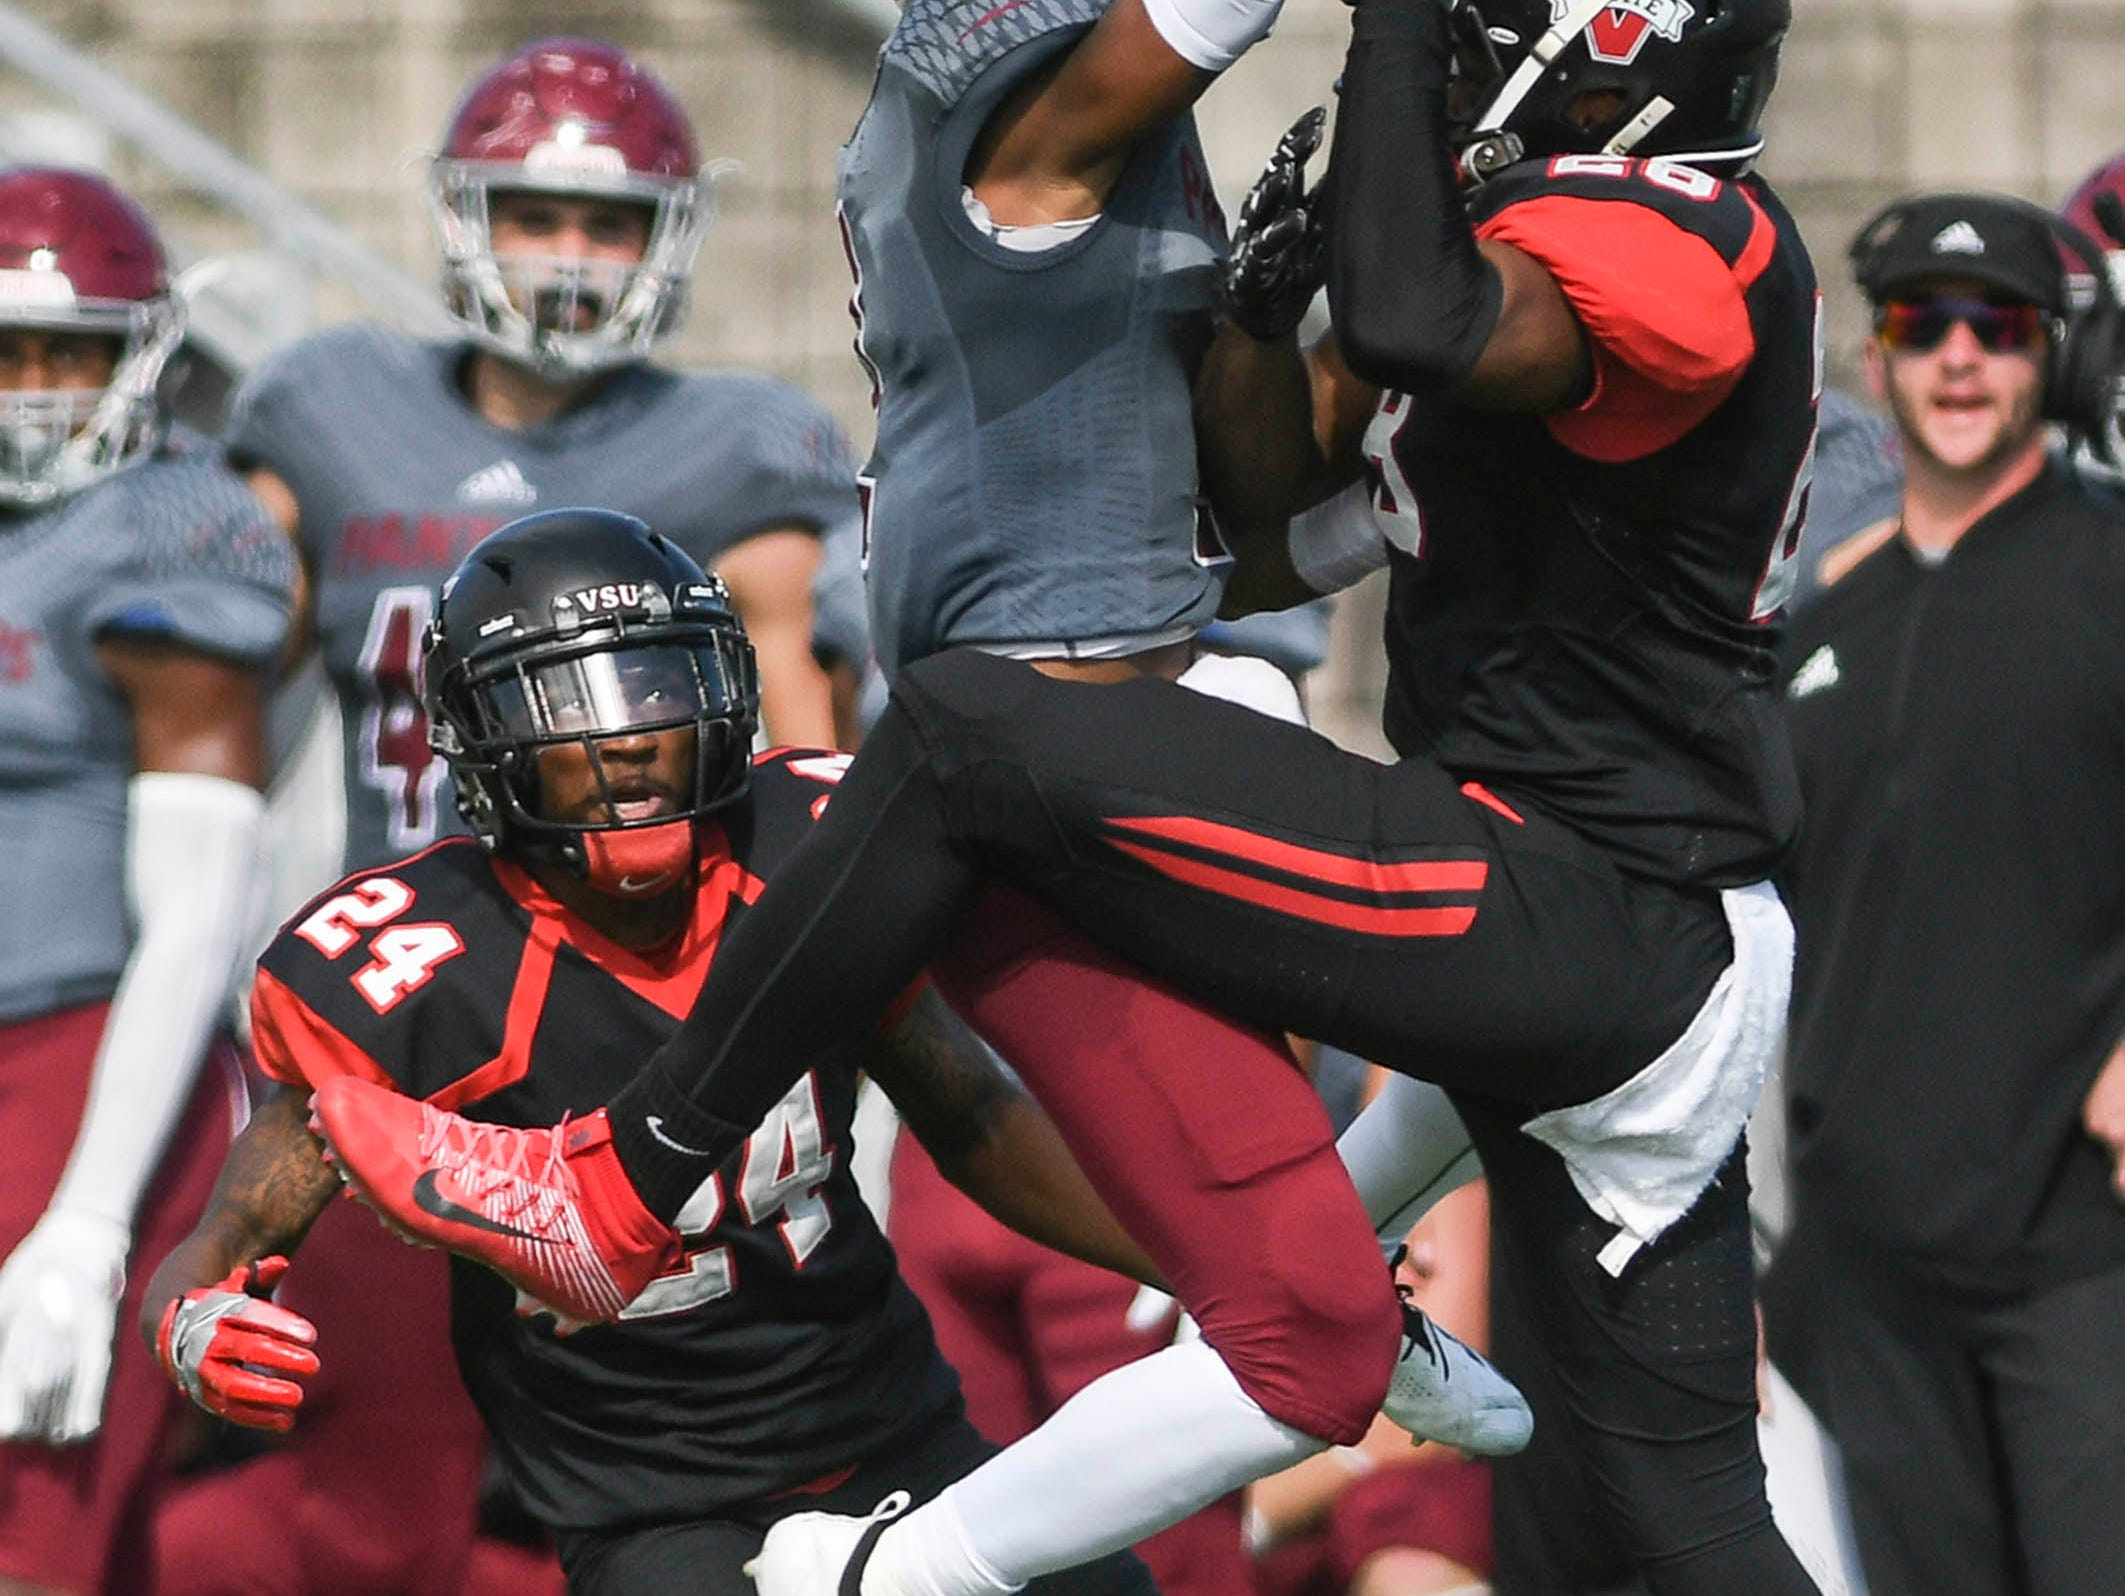 Brian Spurgeon (2) of Florida Tech and Raymond Palmer of Valdosta State contend for a pass during Saturday's game. Alex Brown of Valdosta State (24) will eventually end up with the interception.